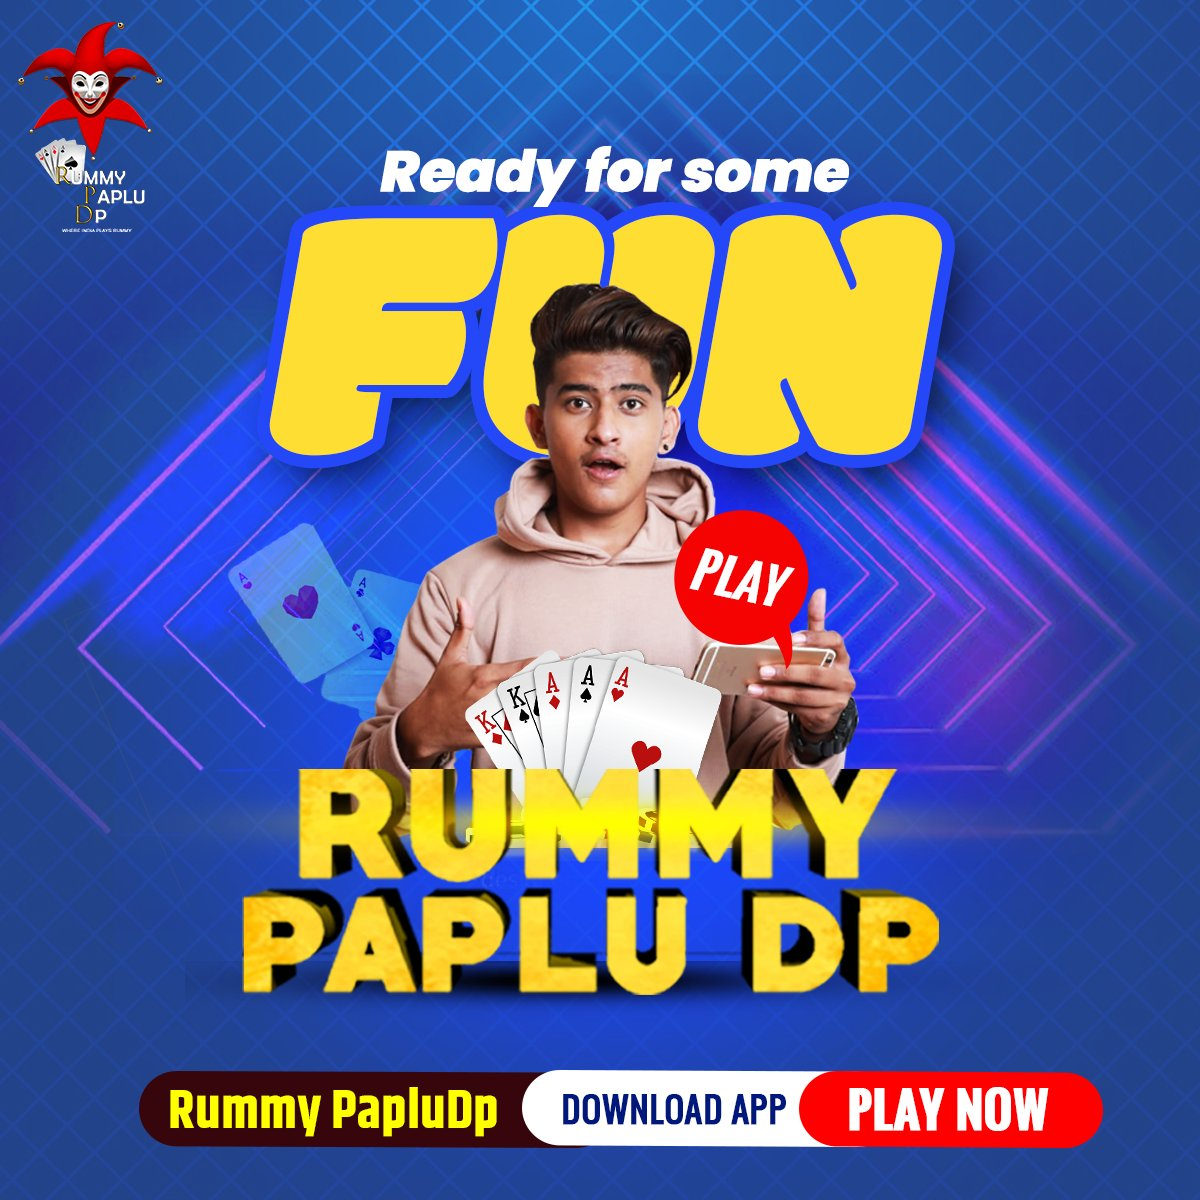 Ready for some fun😍 Play Rummy PapluDp  Download the app now from  Or reach us on   #rummy #rummypapludp #papludp #playingnow #no1runner #gaming #gamer #playandwin #winbig #fun #playbold #onlinerummy #mobilerummy